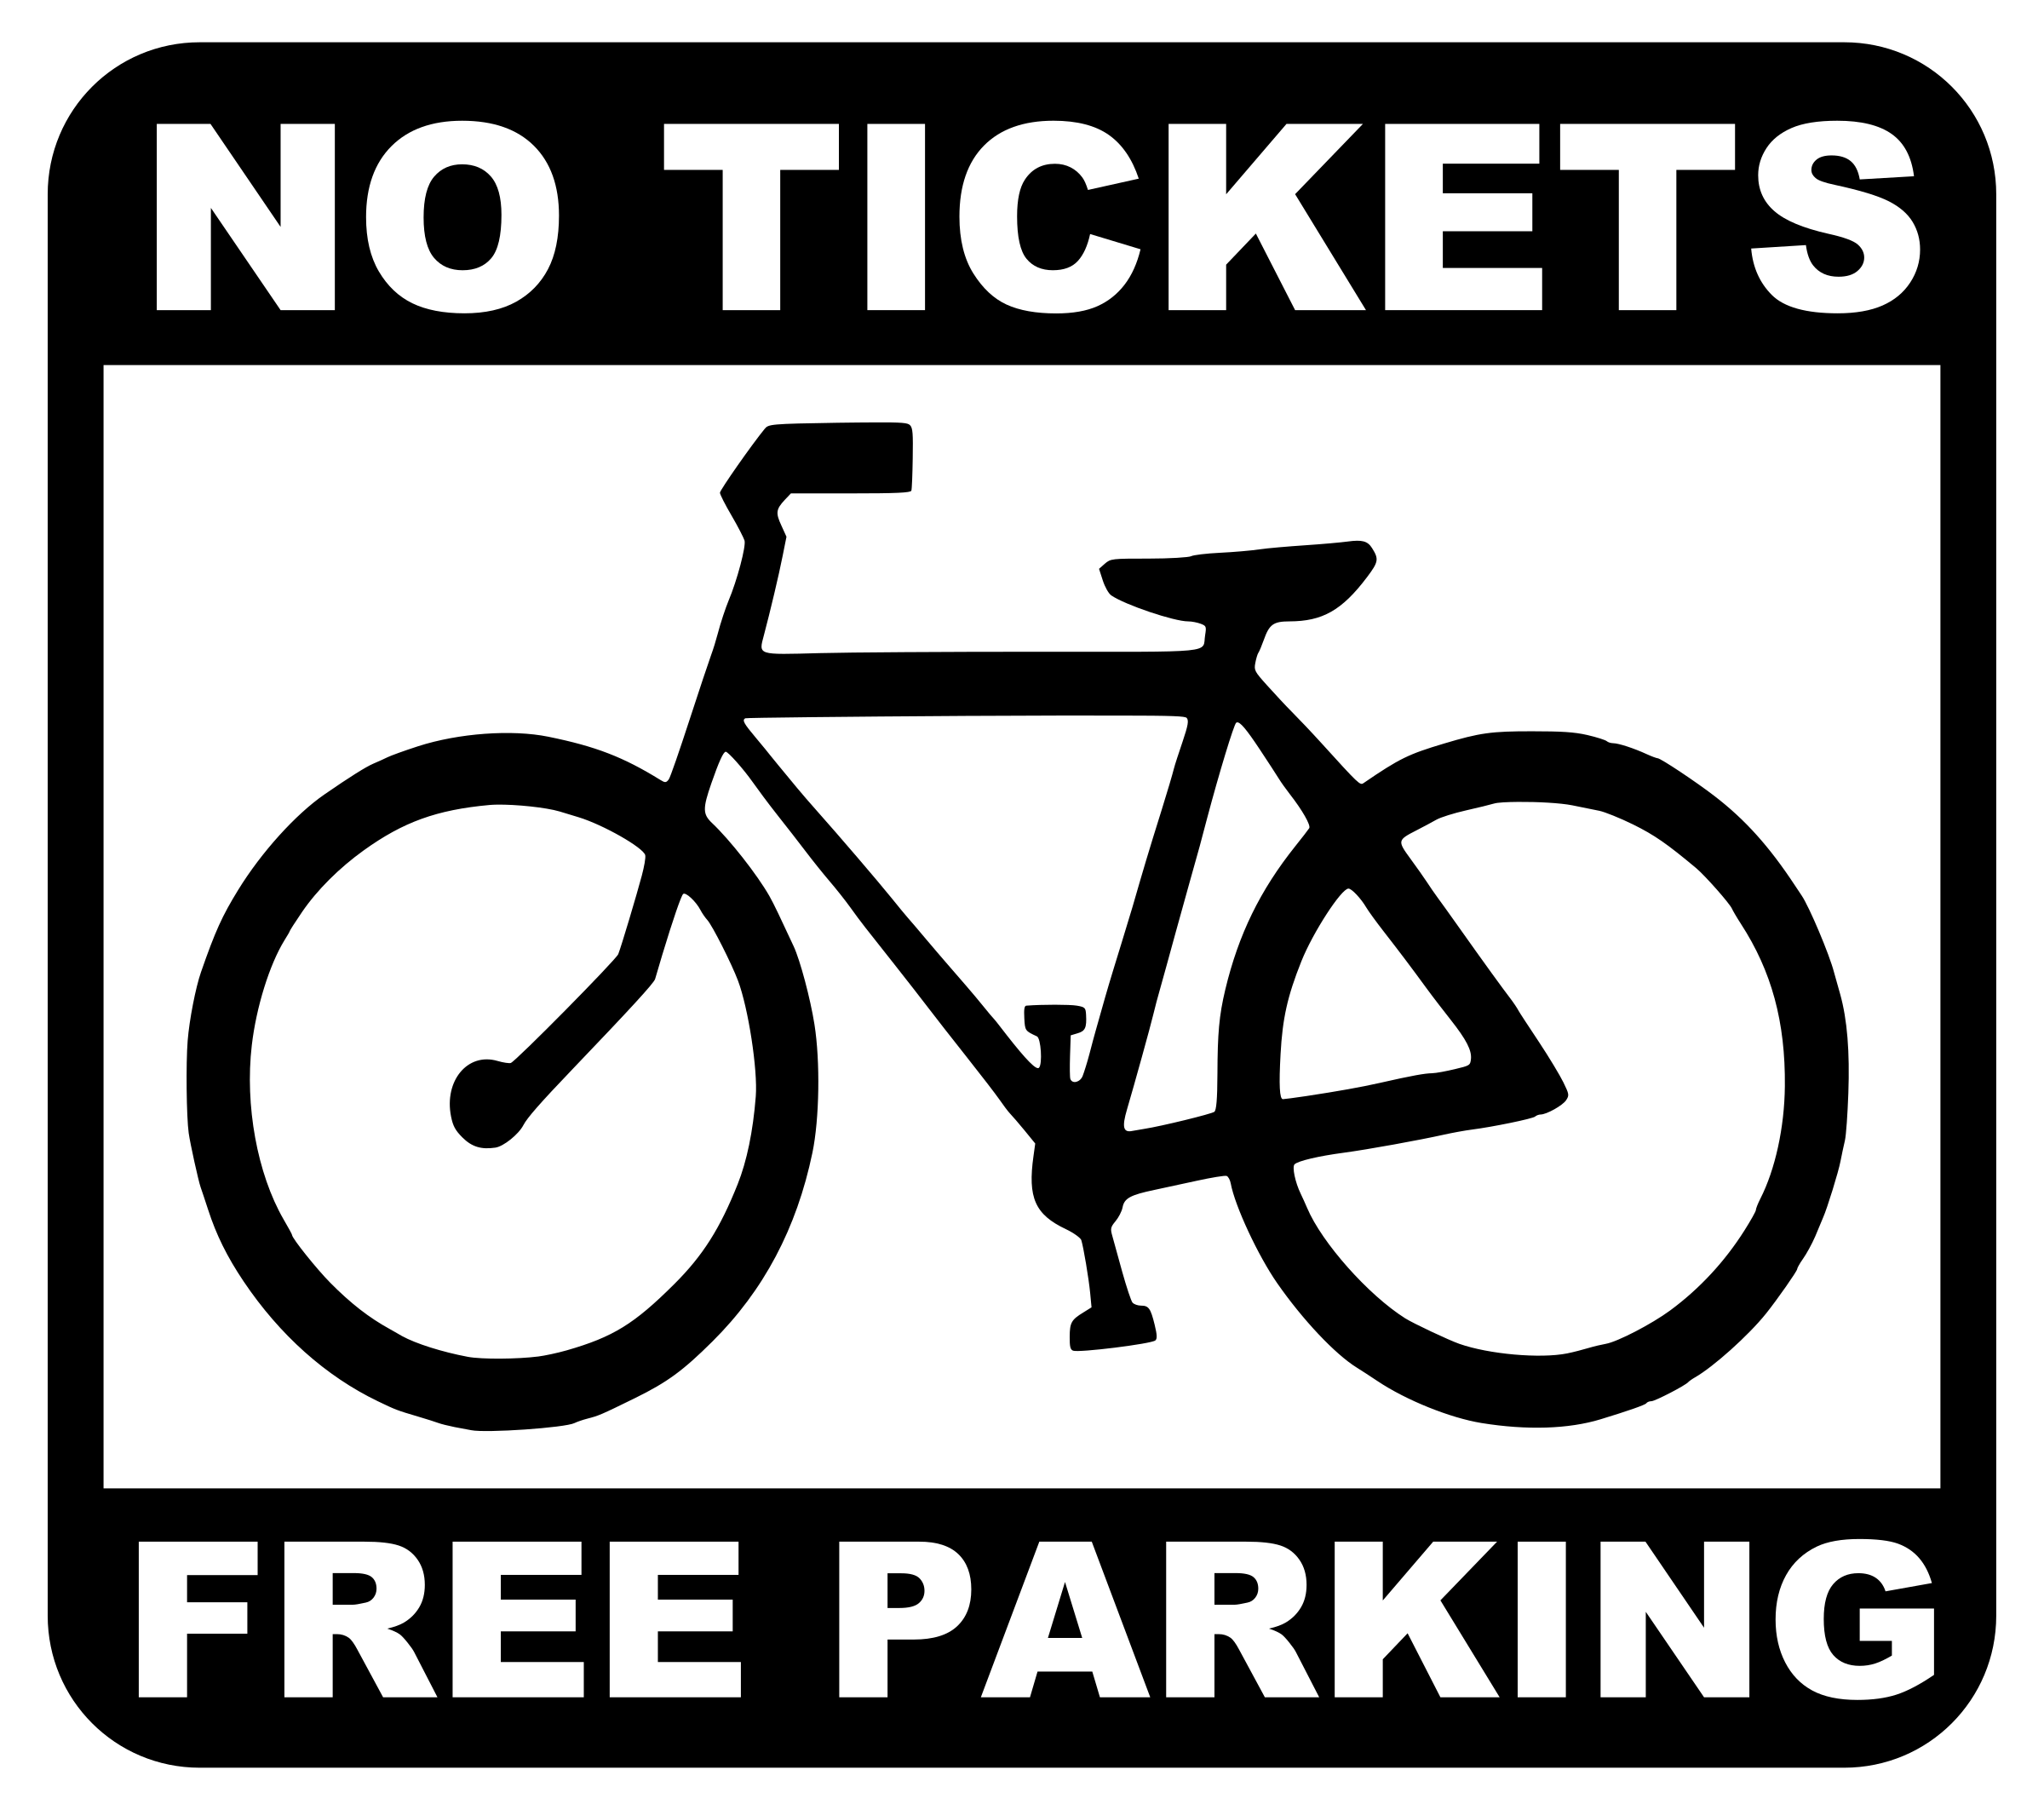 bike - no tickets, free parking by worker